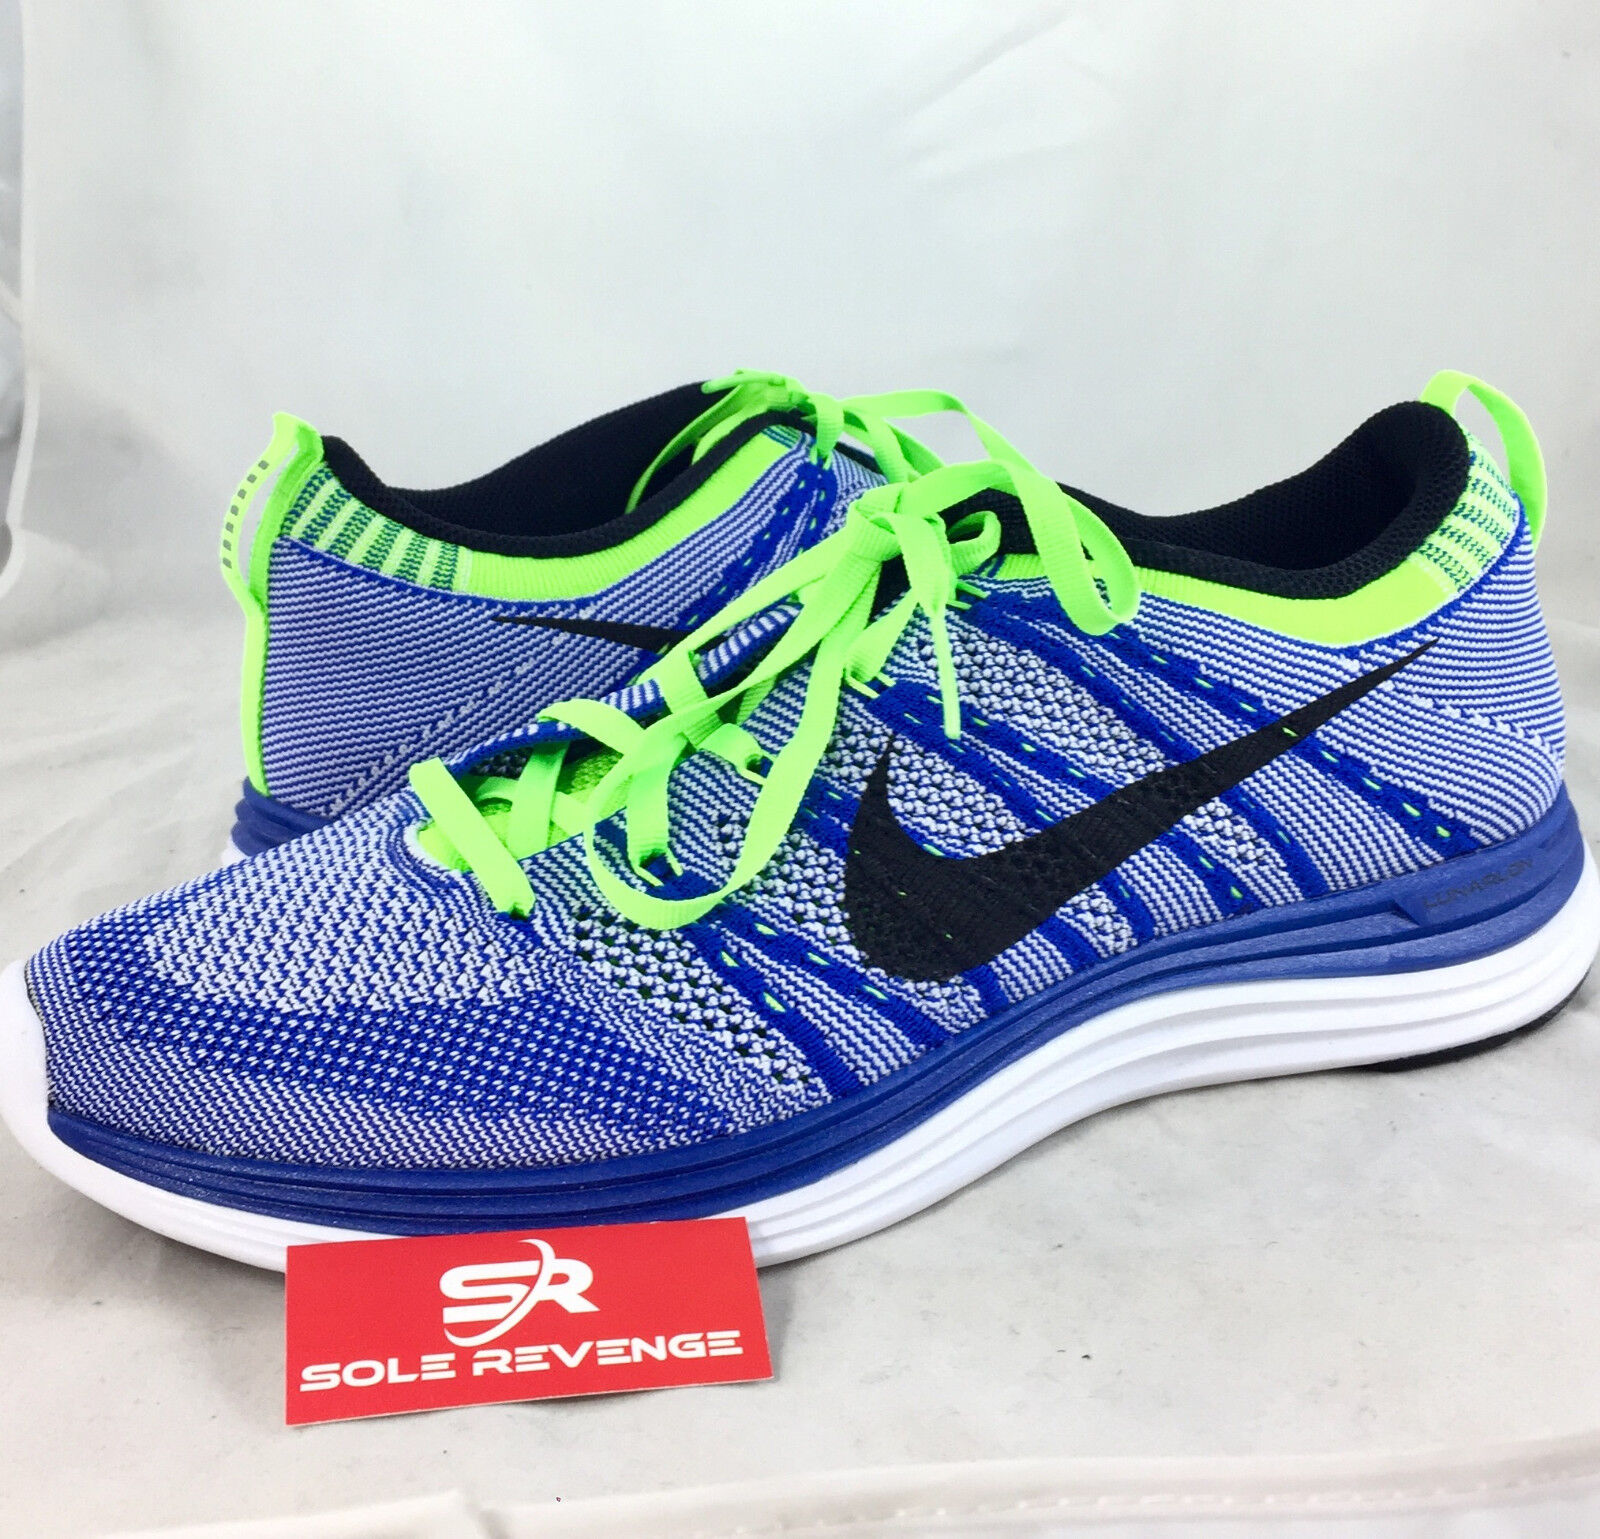 New 9.5 homme Nike Flyknit Lunar One Royal 1 fonctionnement chaussures Game Royal One Bleu noir blanc 0bc513